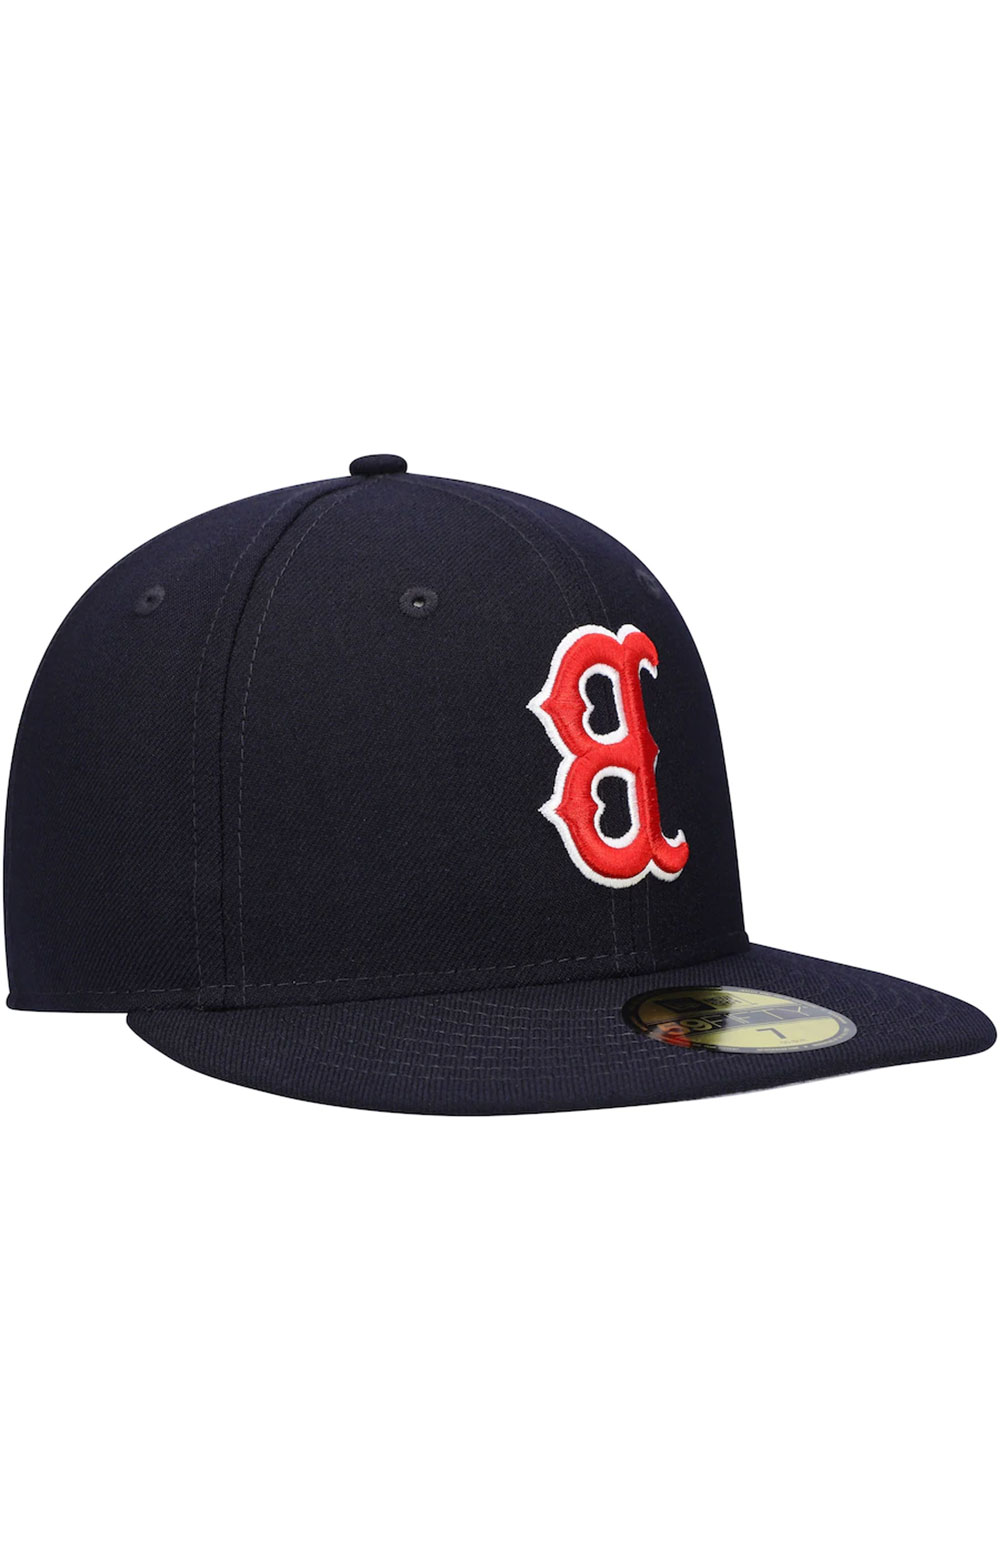 Boston Red Sox Upside Down Logo 59Fifty Fitted Hat - Navy 3